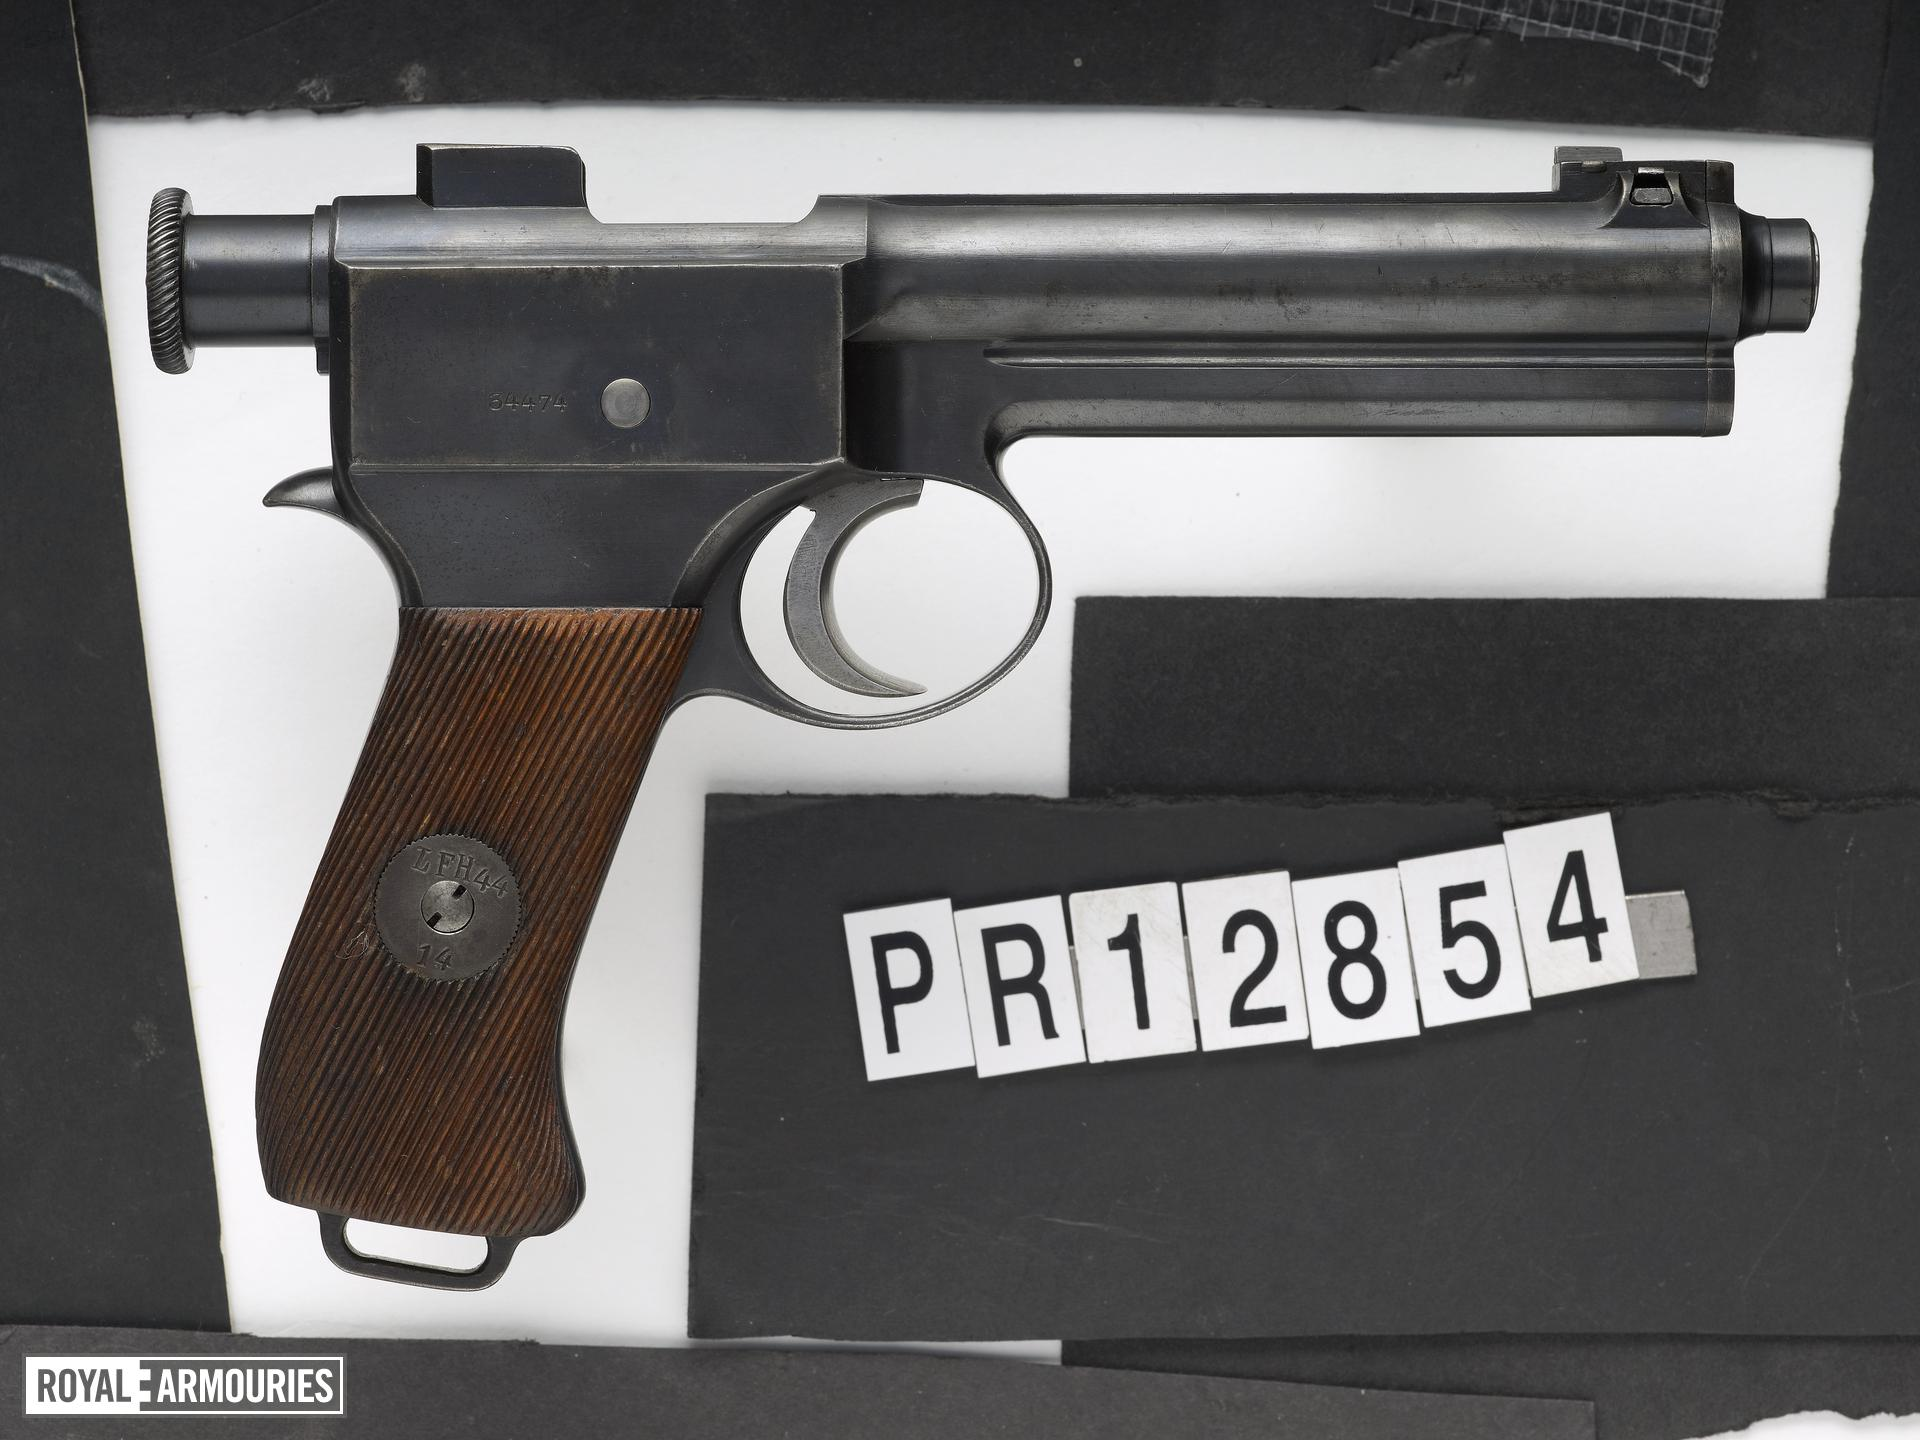 Roth Steyr self loading pistol, Model 1907. Austrian